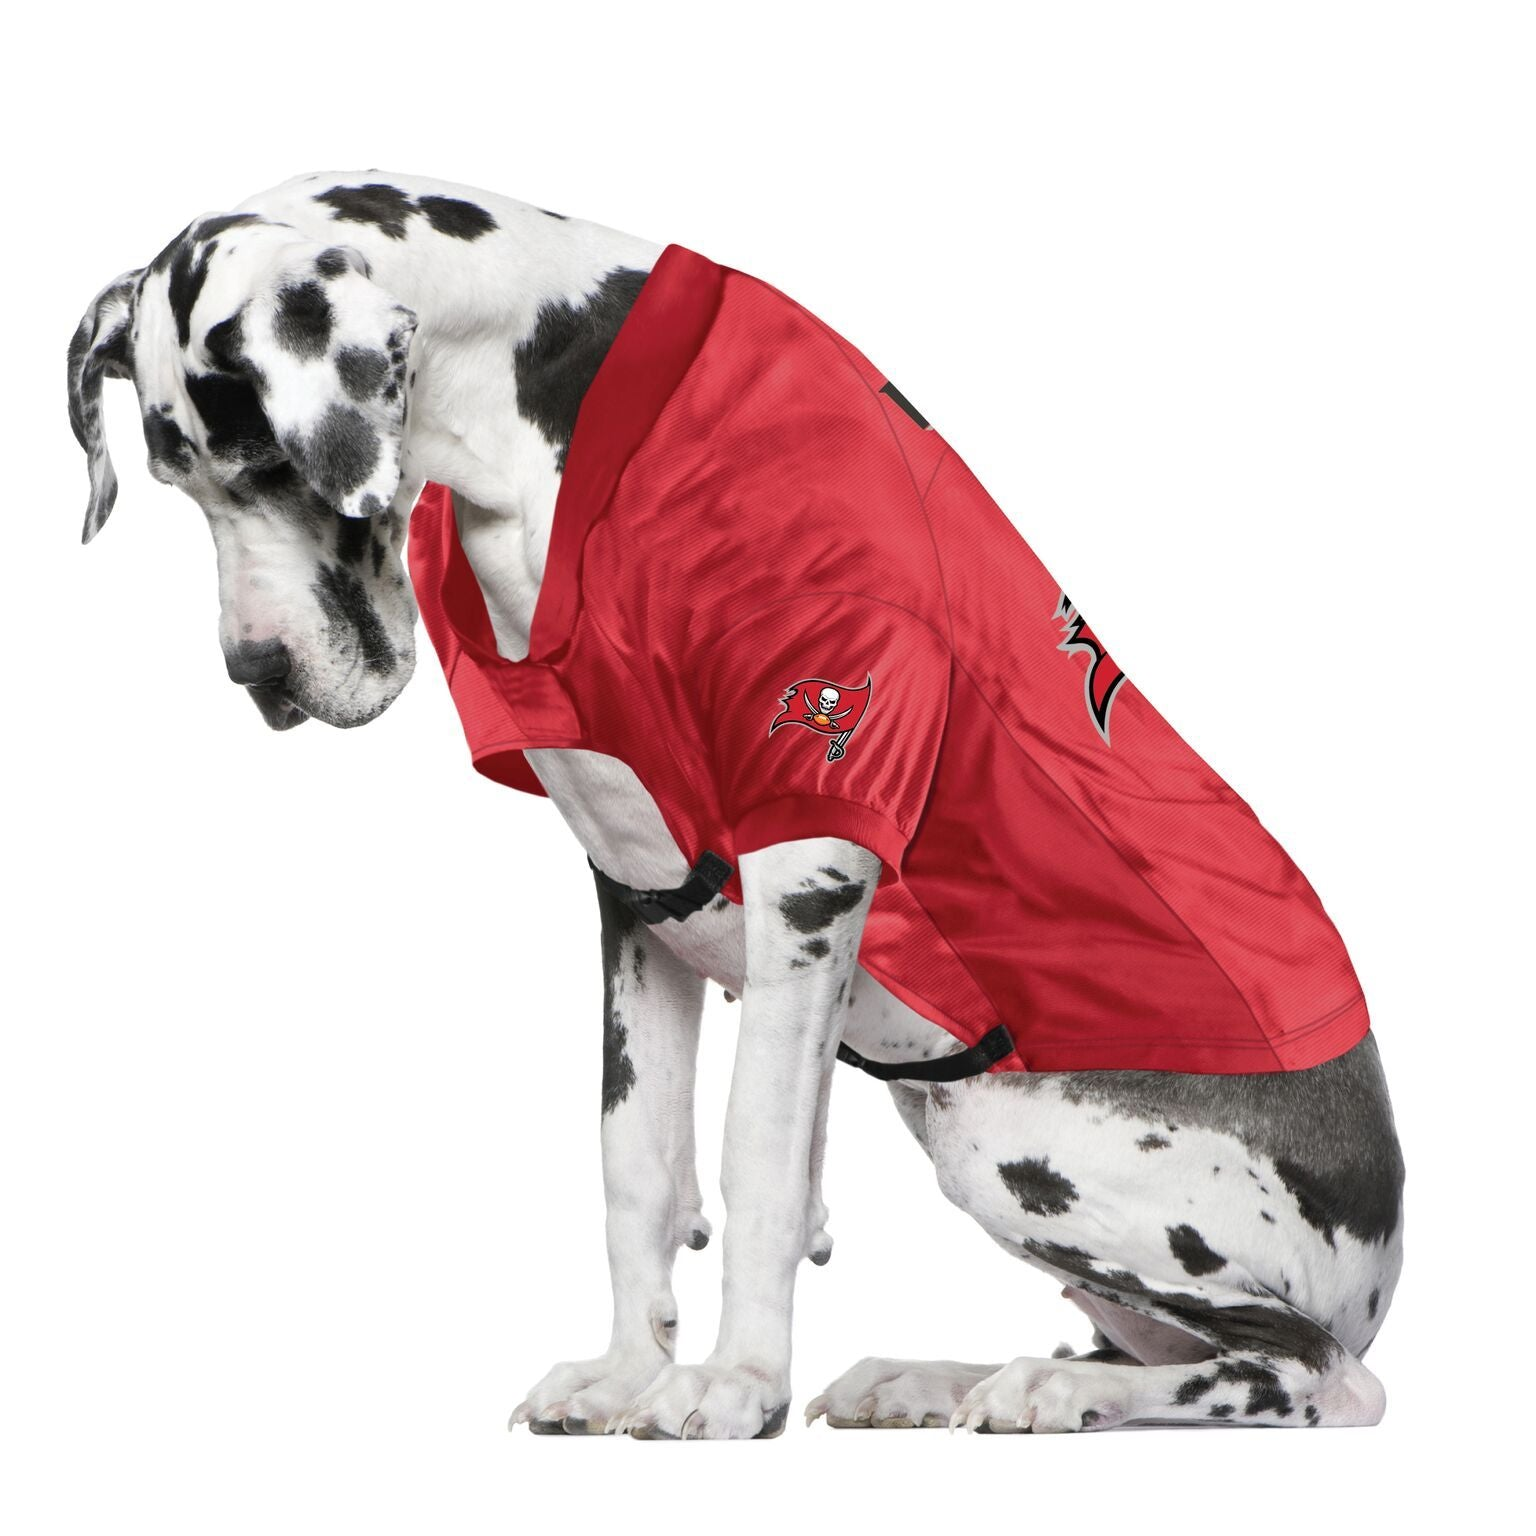 Buccaneers Fan Jersey For Your Dog